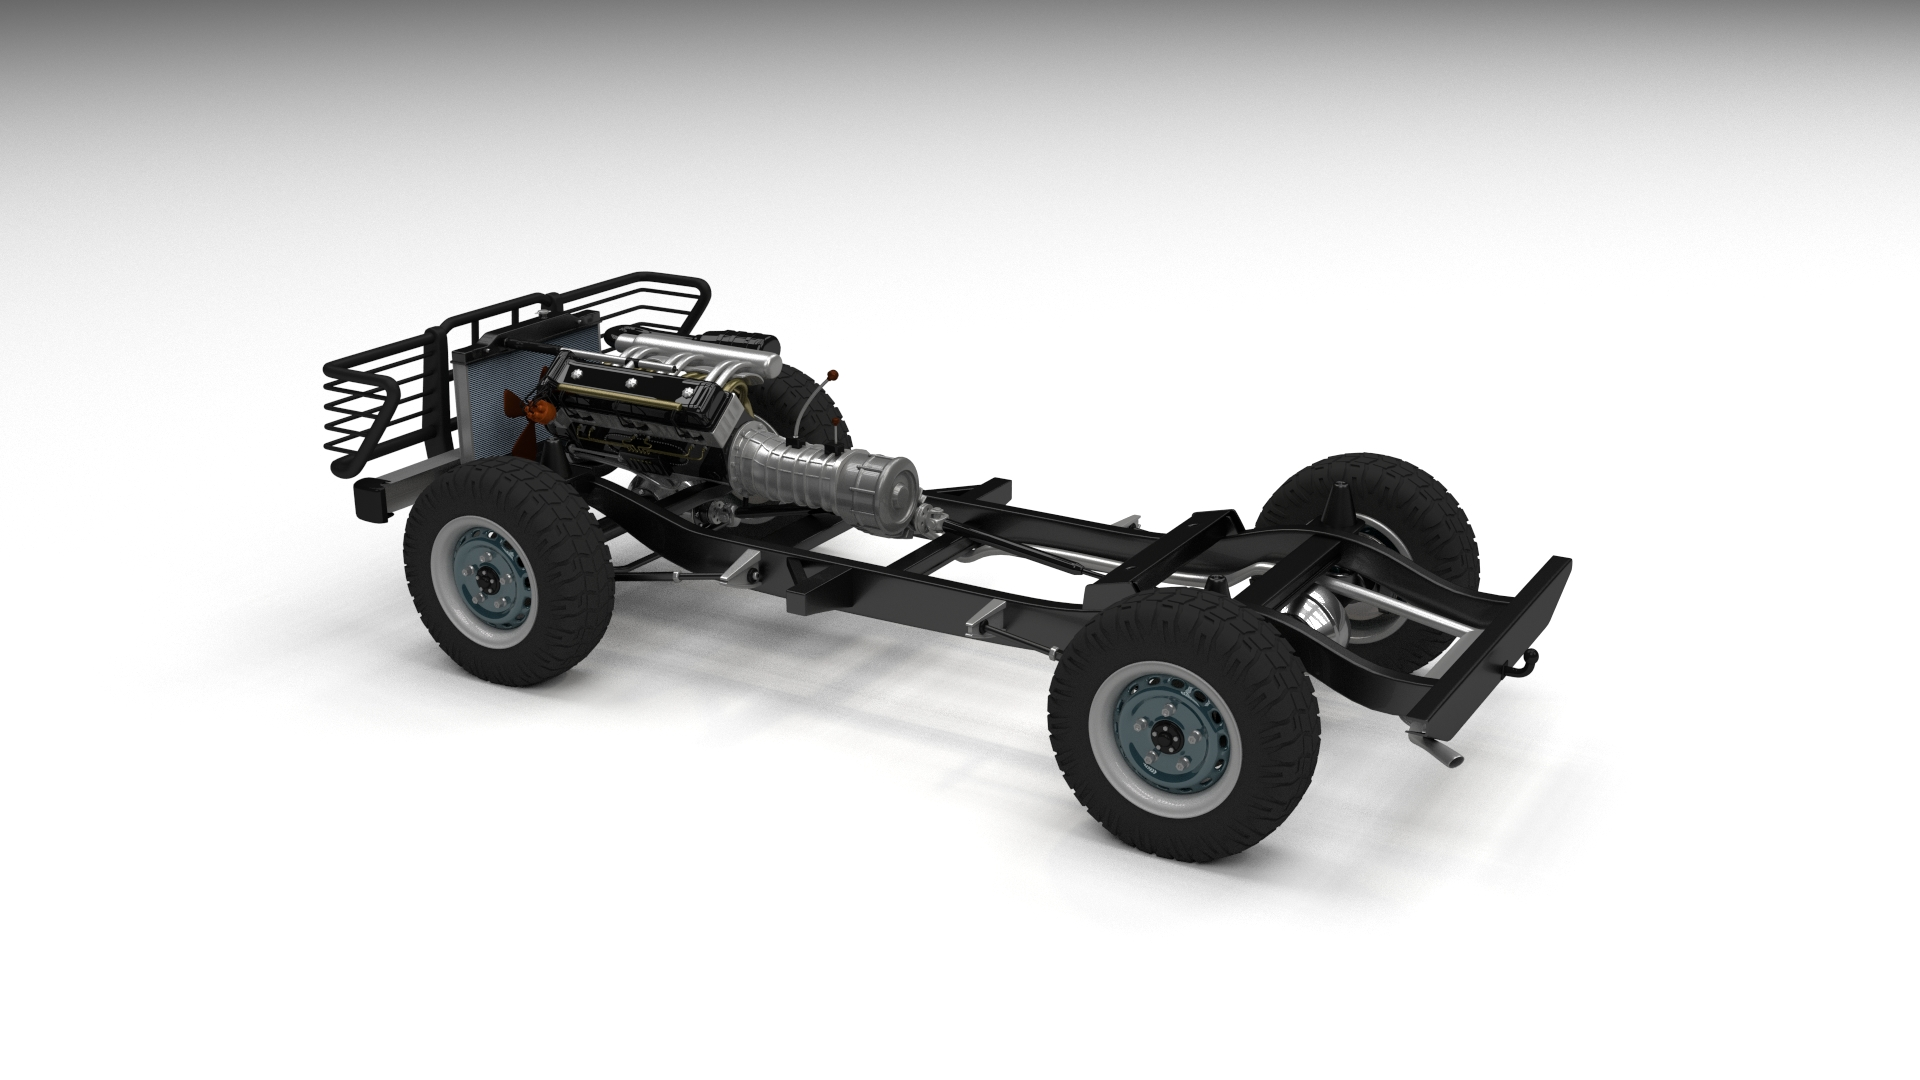 Full Land Rover Defender Pack W Chassis And Interior By